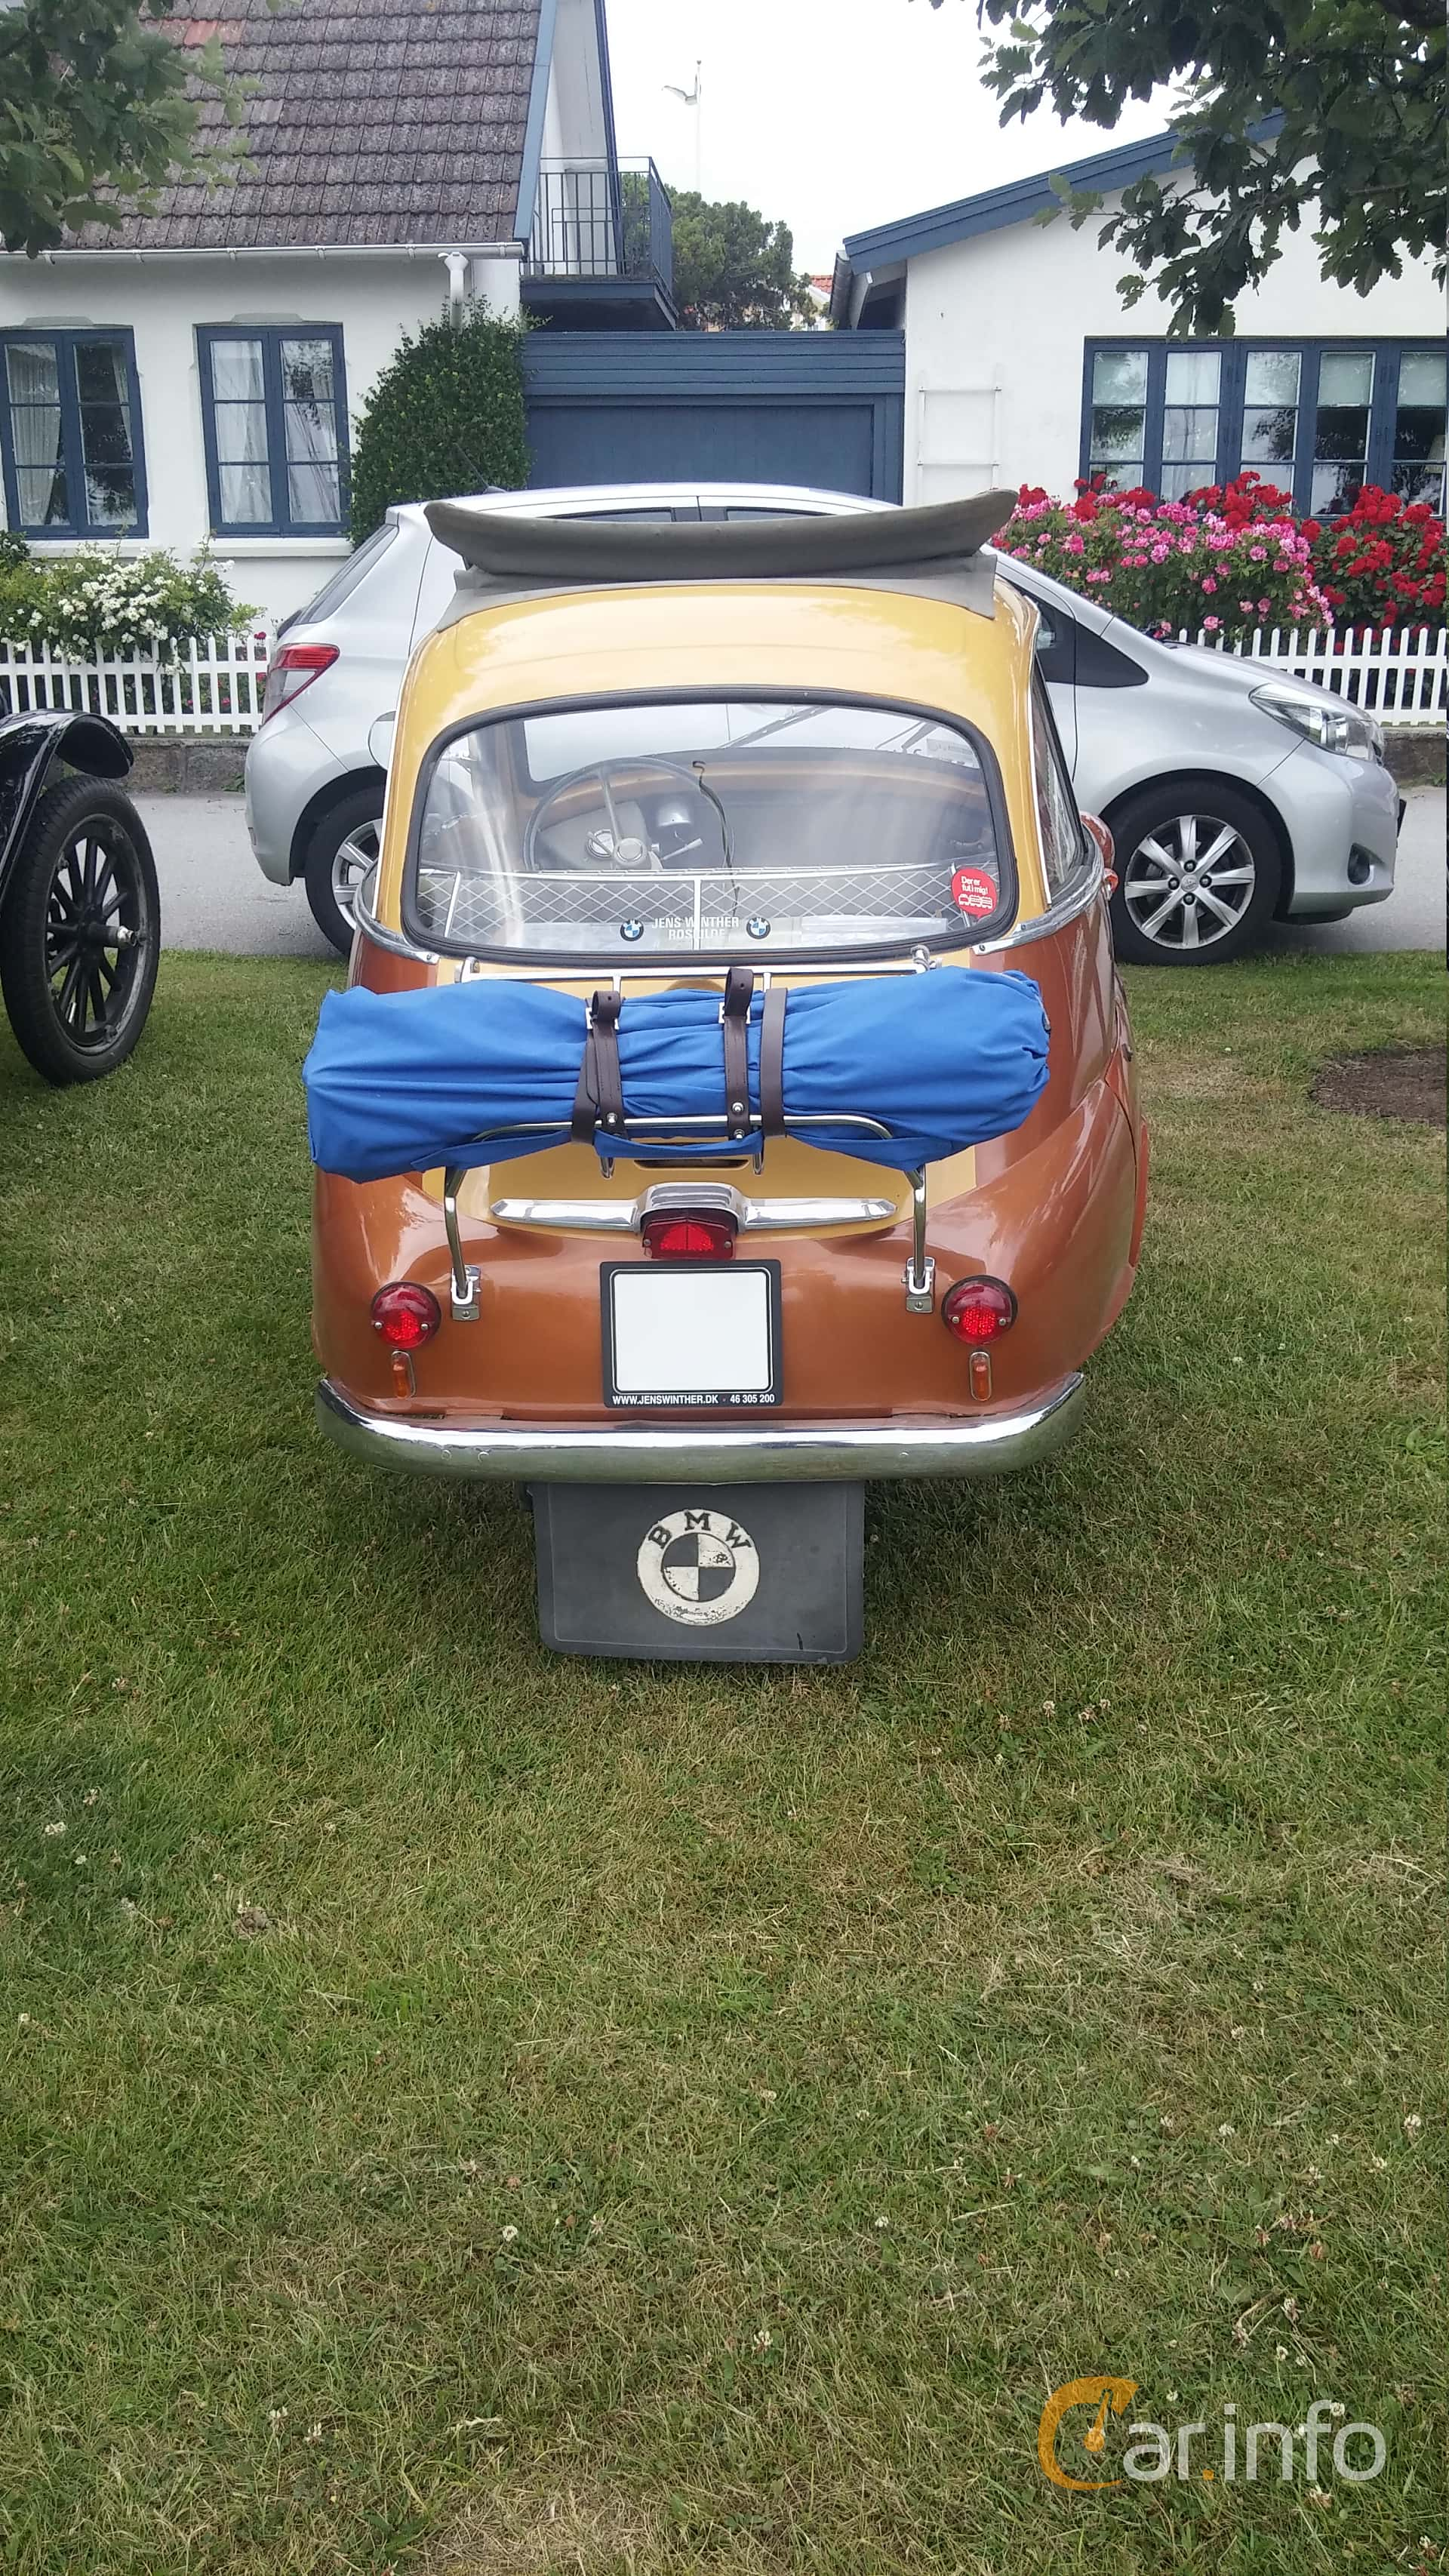 BMW Isetta 300  Manual, 14hp, 1960 at Veteranbilsträff i Vikens hamn Juni 2016